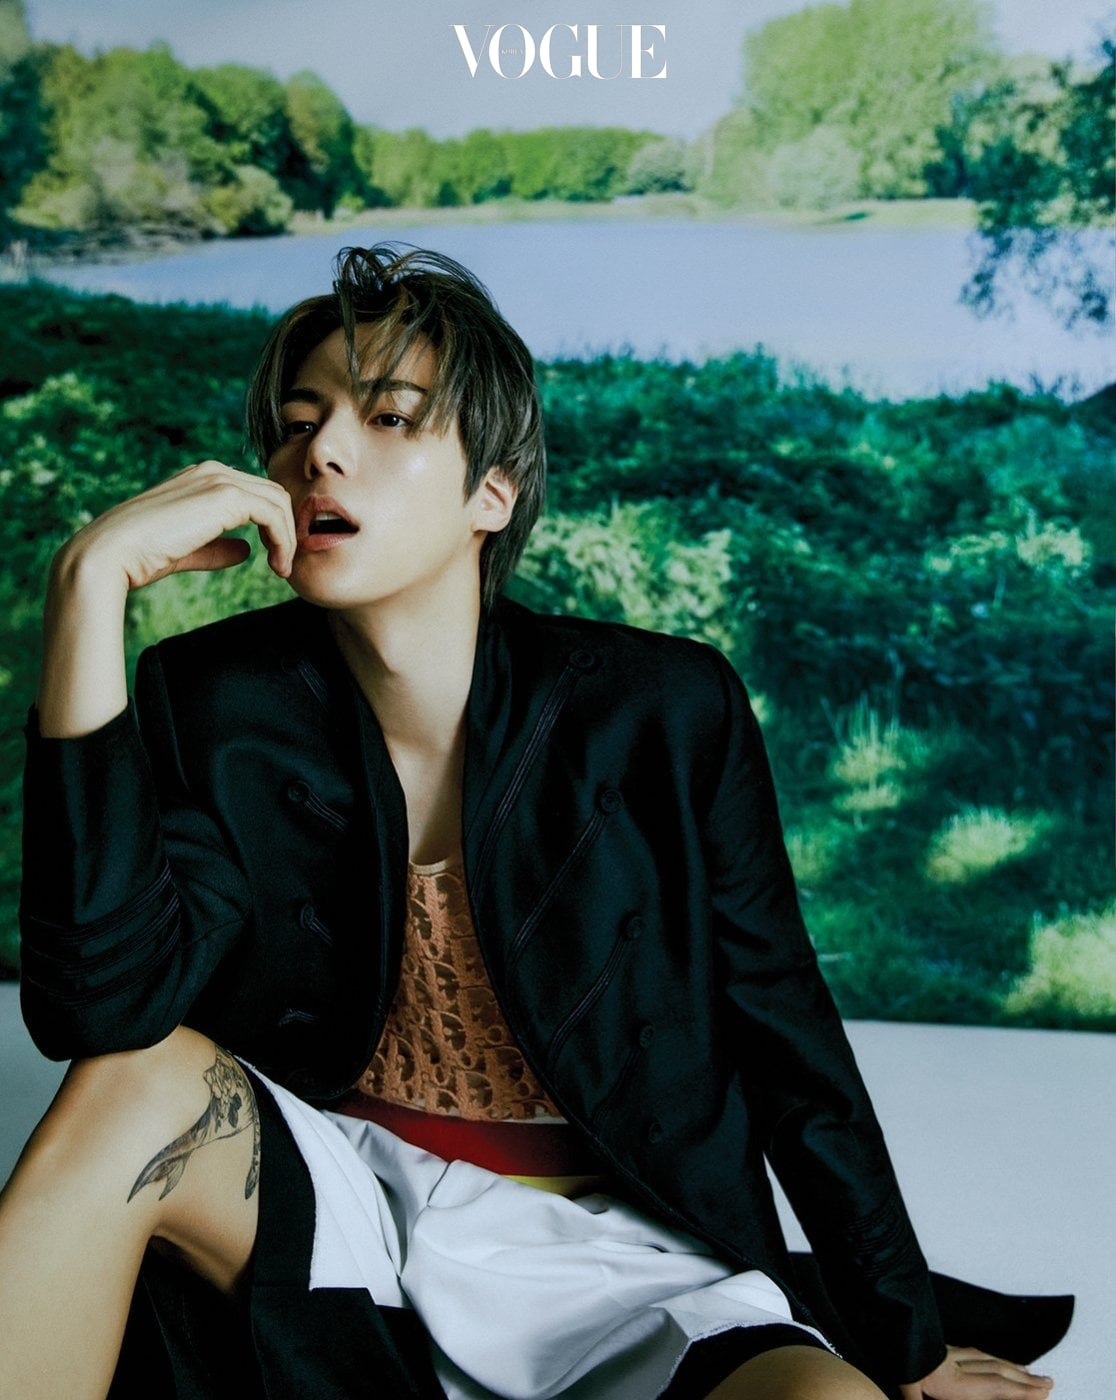 MONSTA X Minhyuk and IM participated in an interview and photo shoot for Vogue!